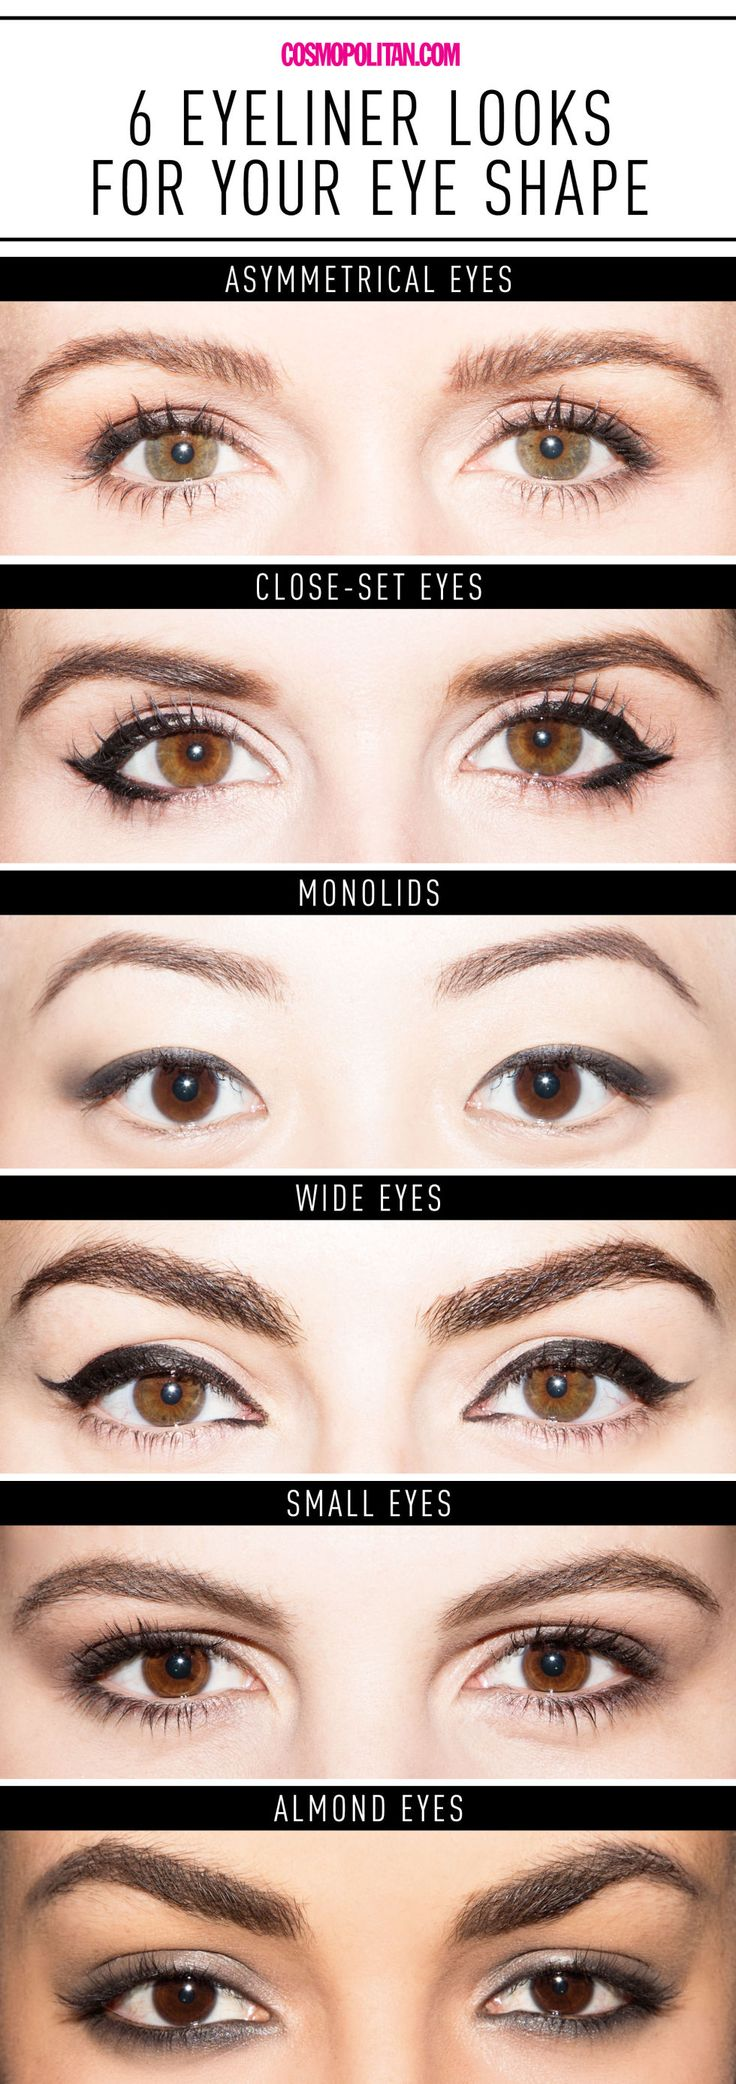 Eyeliner for Eye Shapes Chart - Get the Perfect Eyeliner for Your Eye Shape in 1 Handy Chart